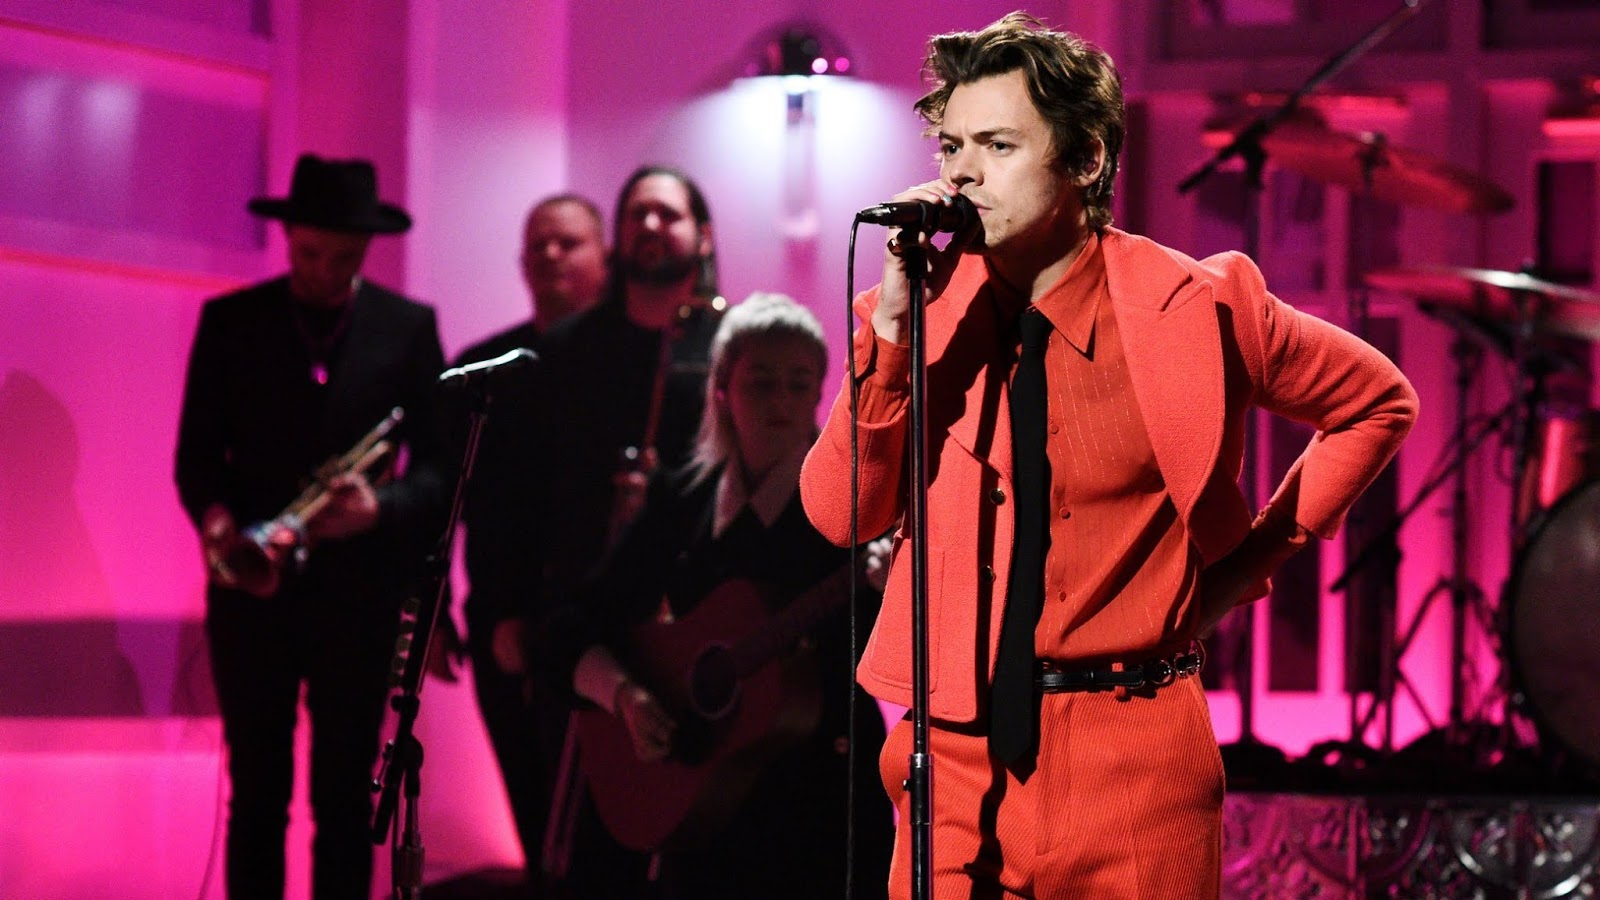 Itsnotyouitsme Blog Dig Out Harry Styles As He Deliciously Lights